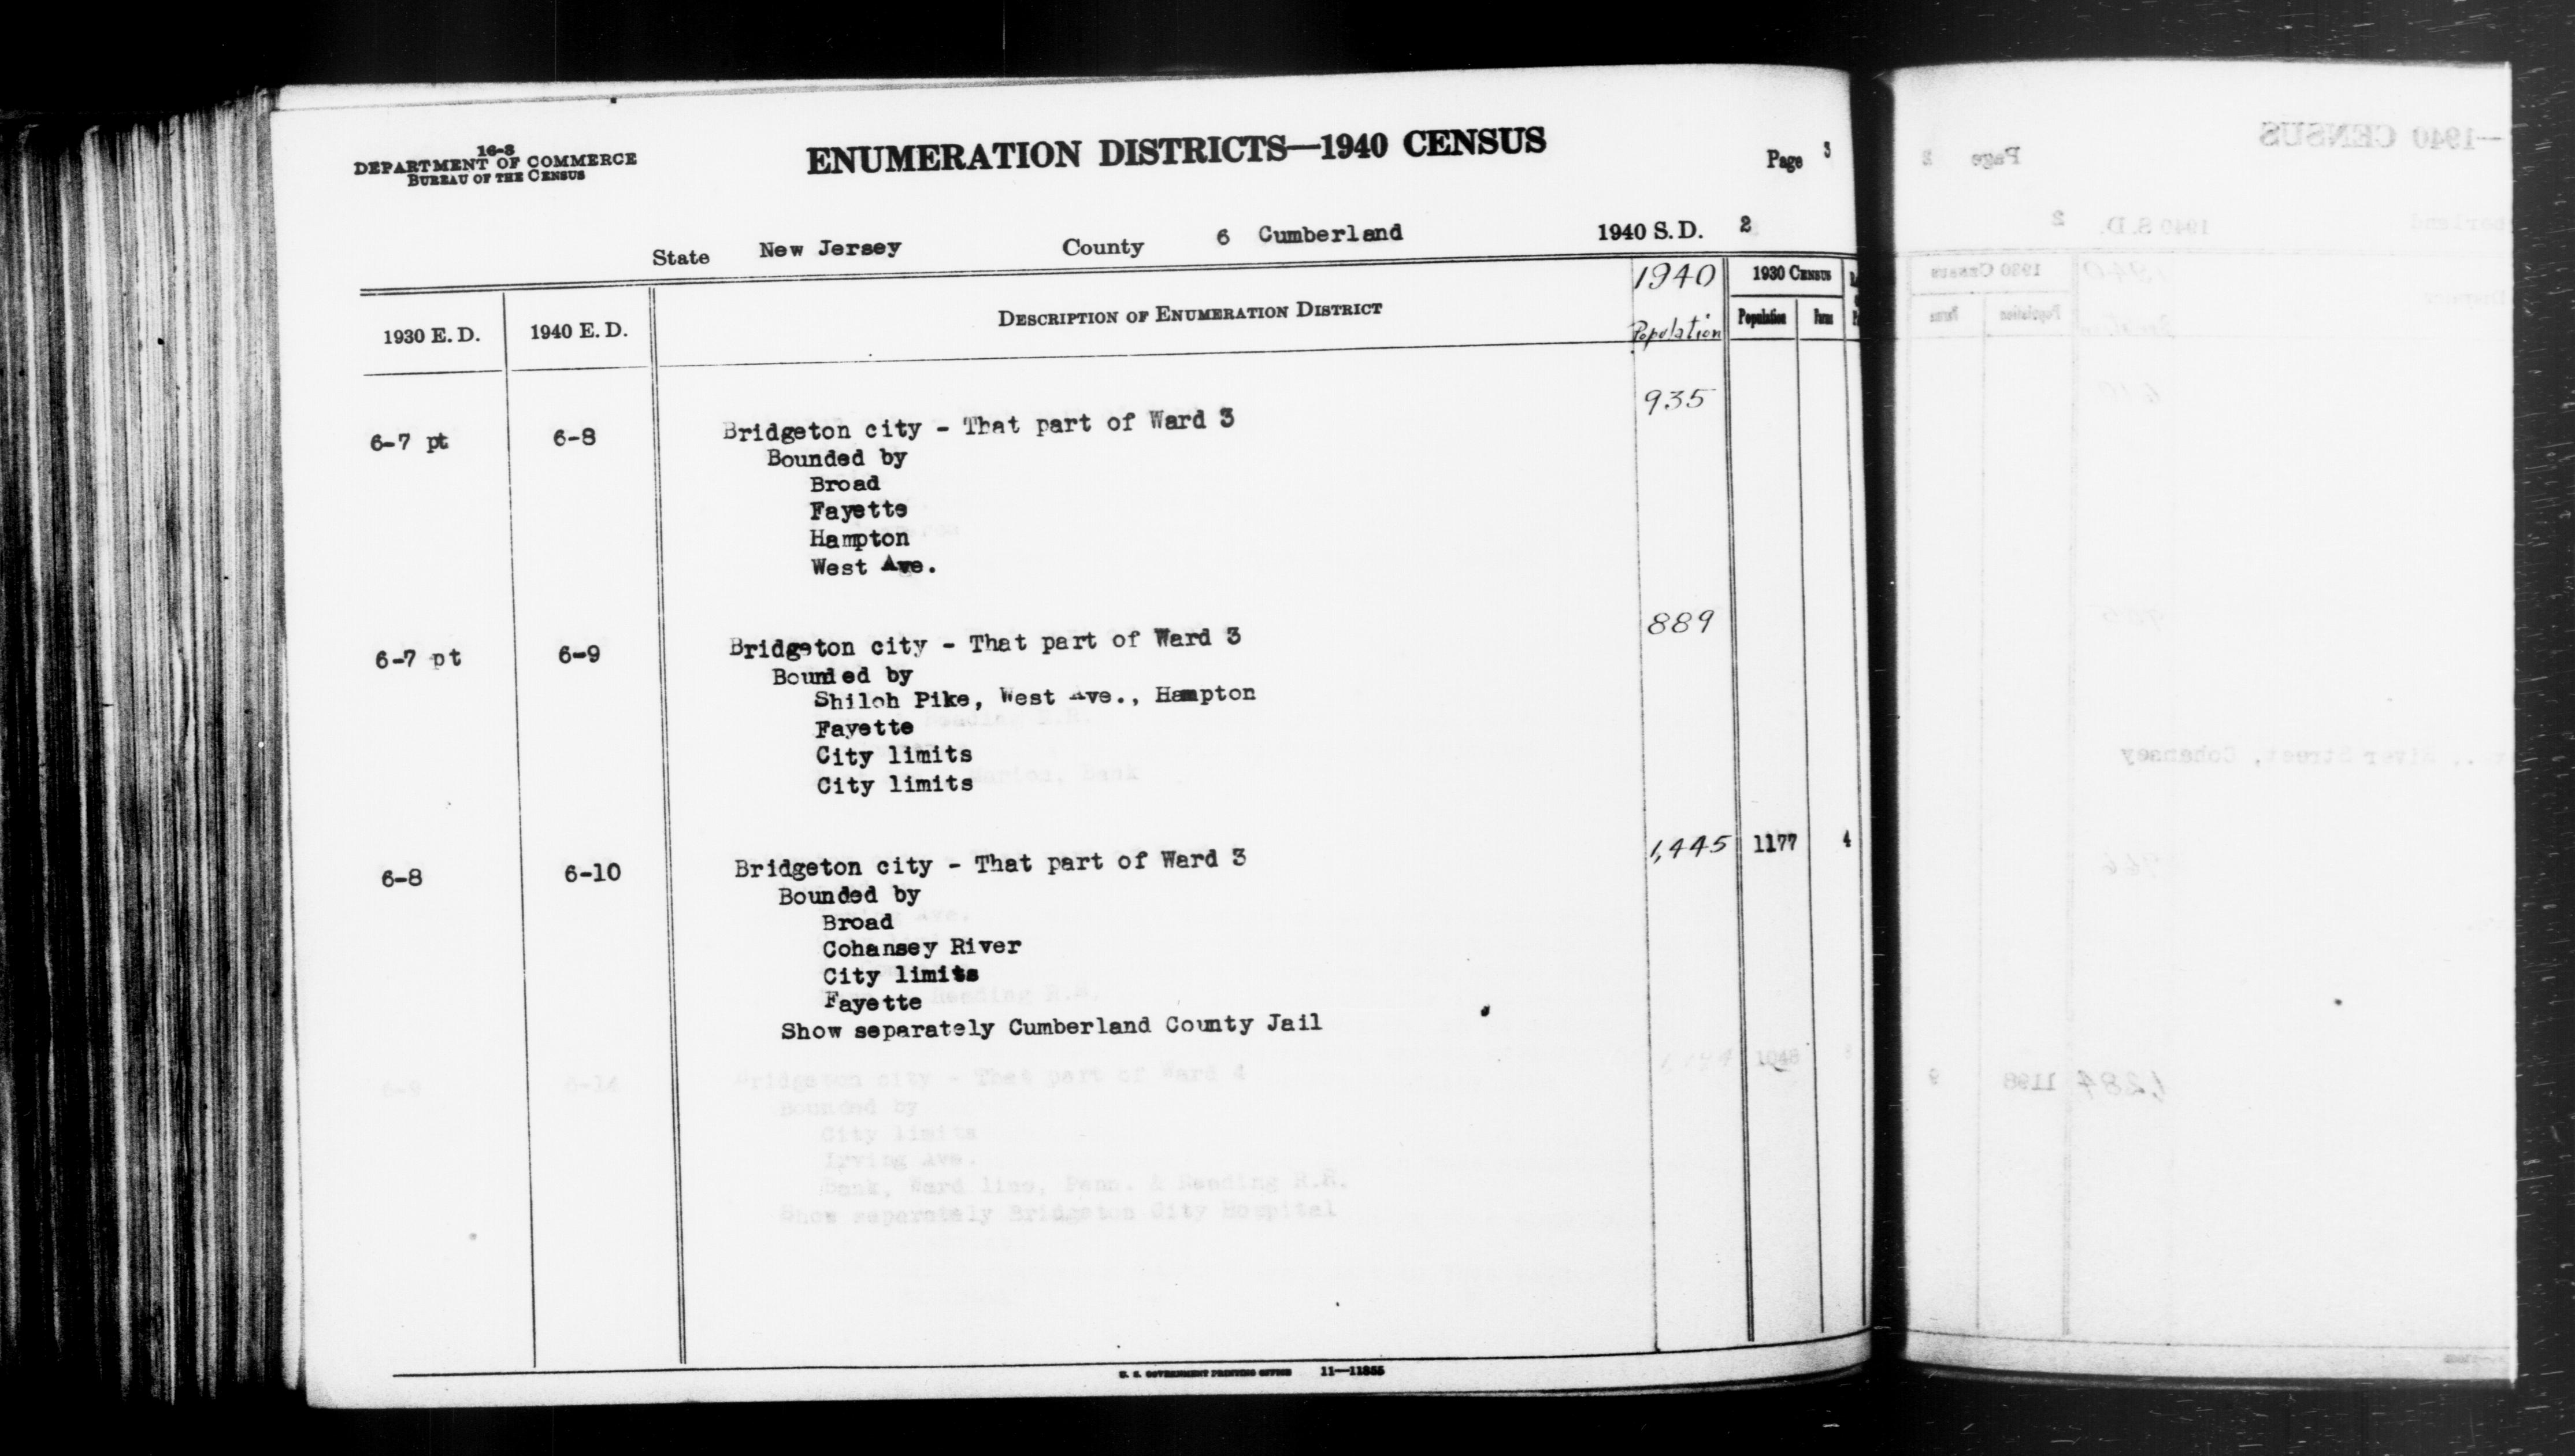 1940 Census Enumeration District Descriptions - New Jersey - Cumberland County - ED 6-8, ED 6-9, ED 6-10